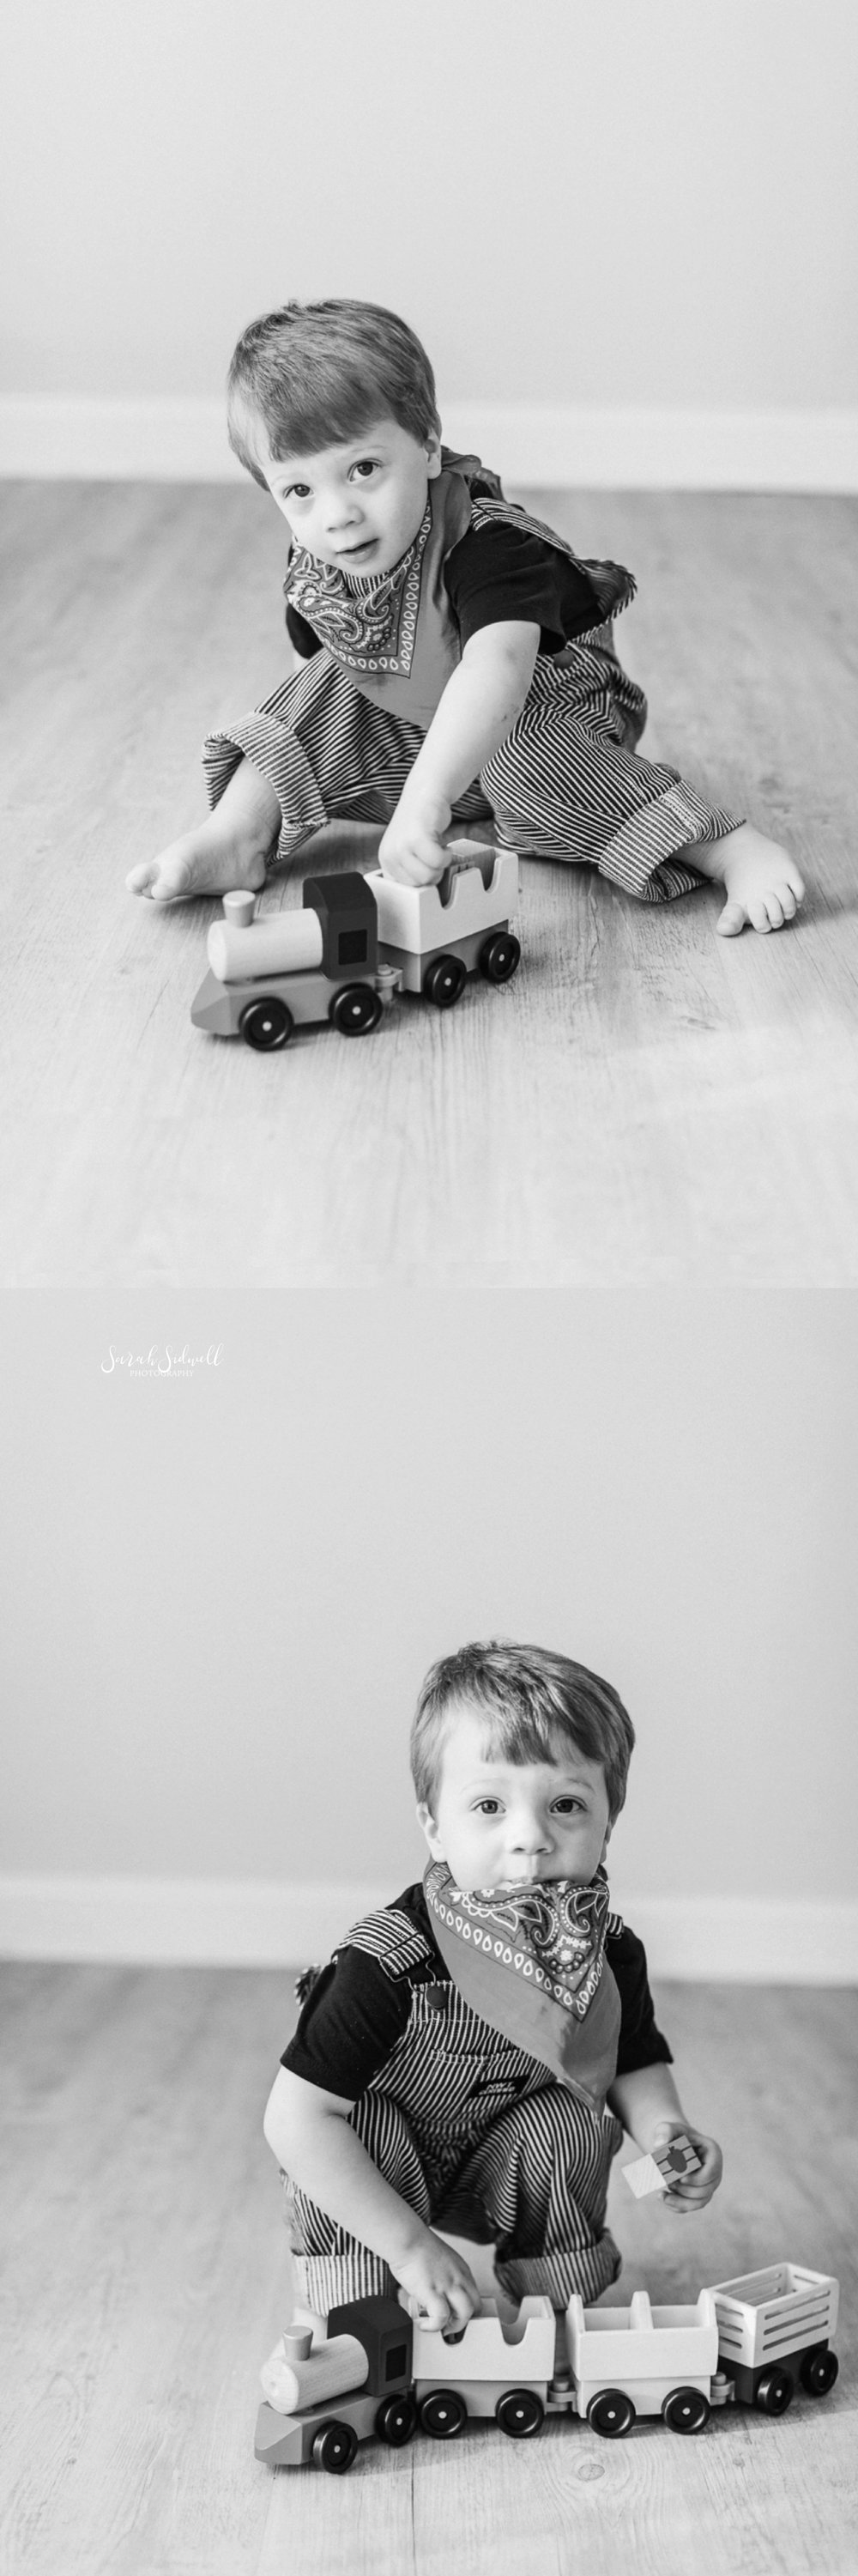 A boy plays with his trains.